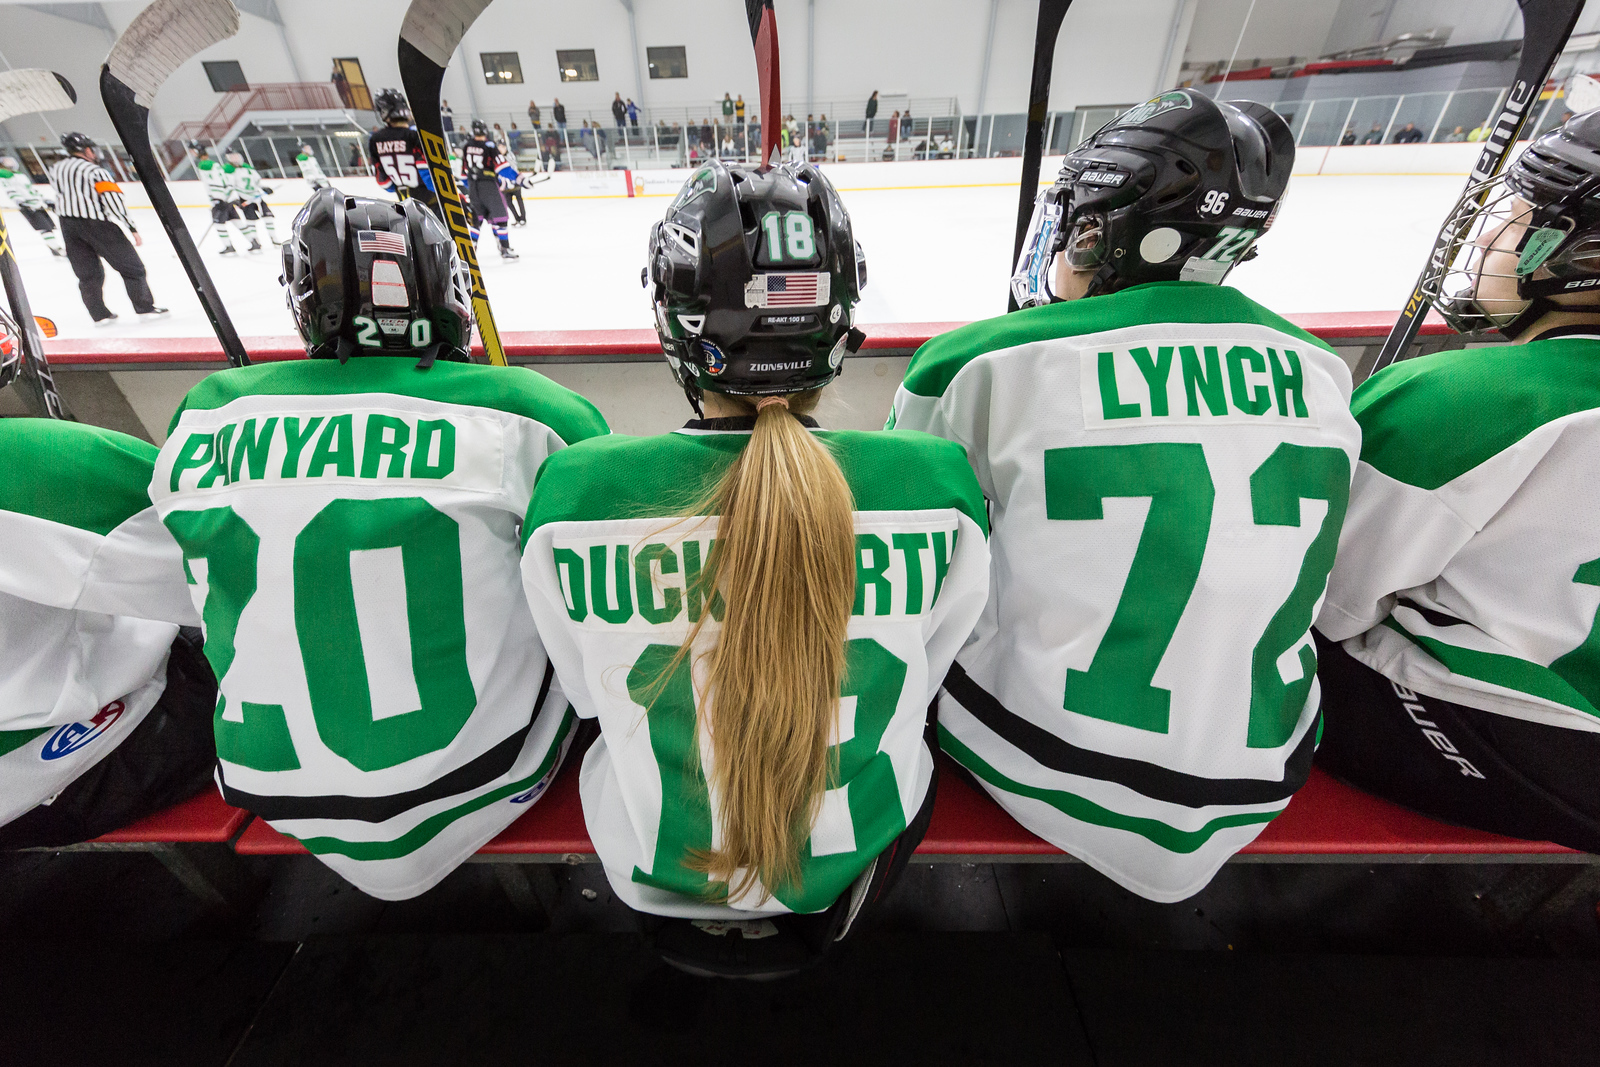 Ponytail at a hockey game...love it.